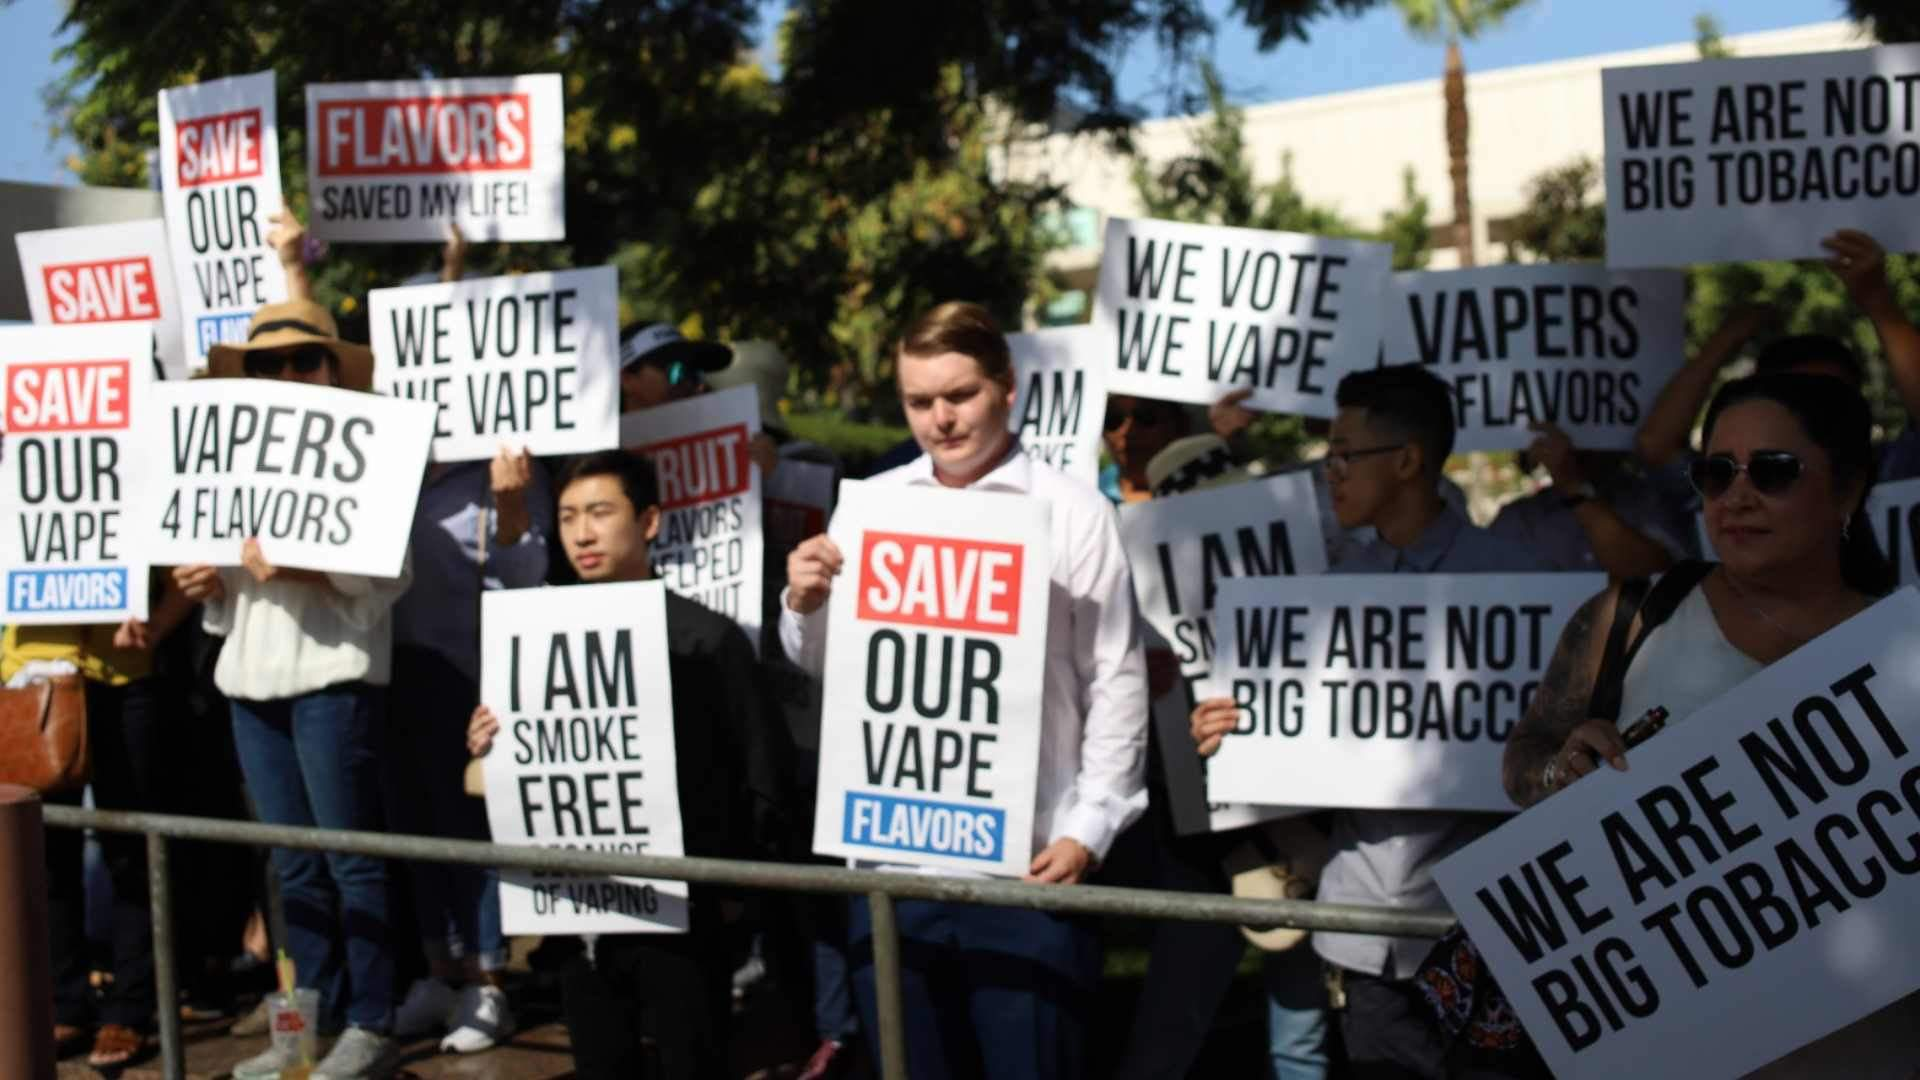 la flavored vape ban rally